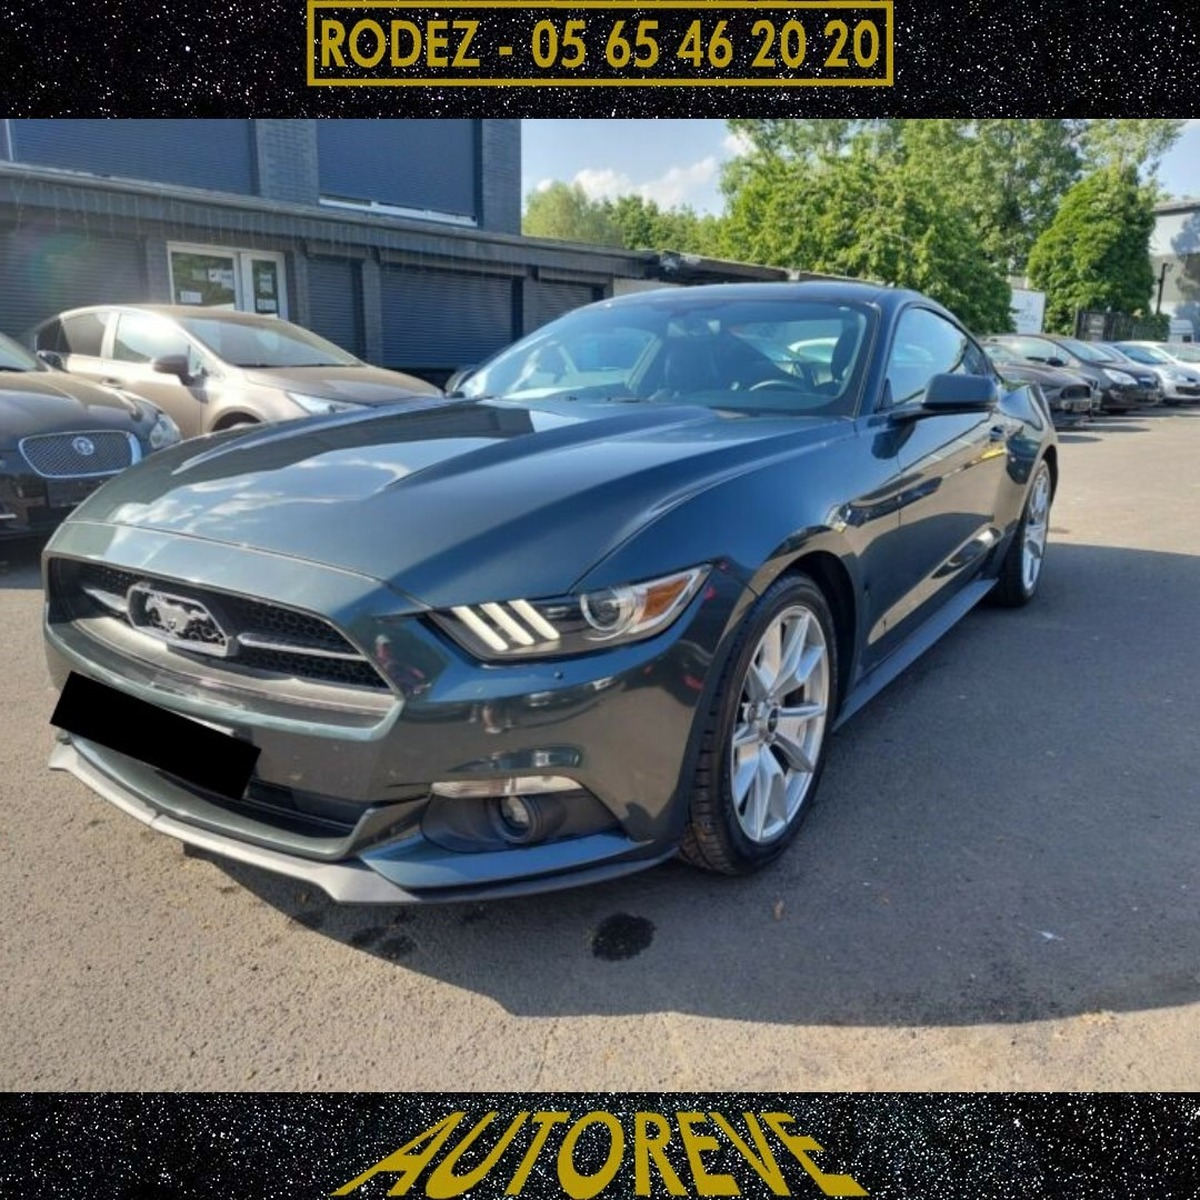 Ford Mustang 2.3 Eco Boost 50éme anniversaire